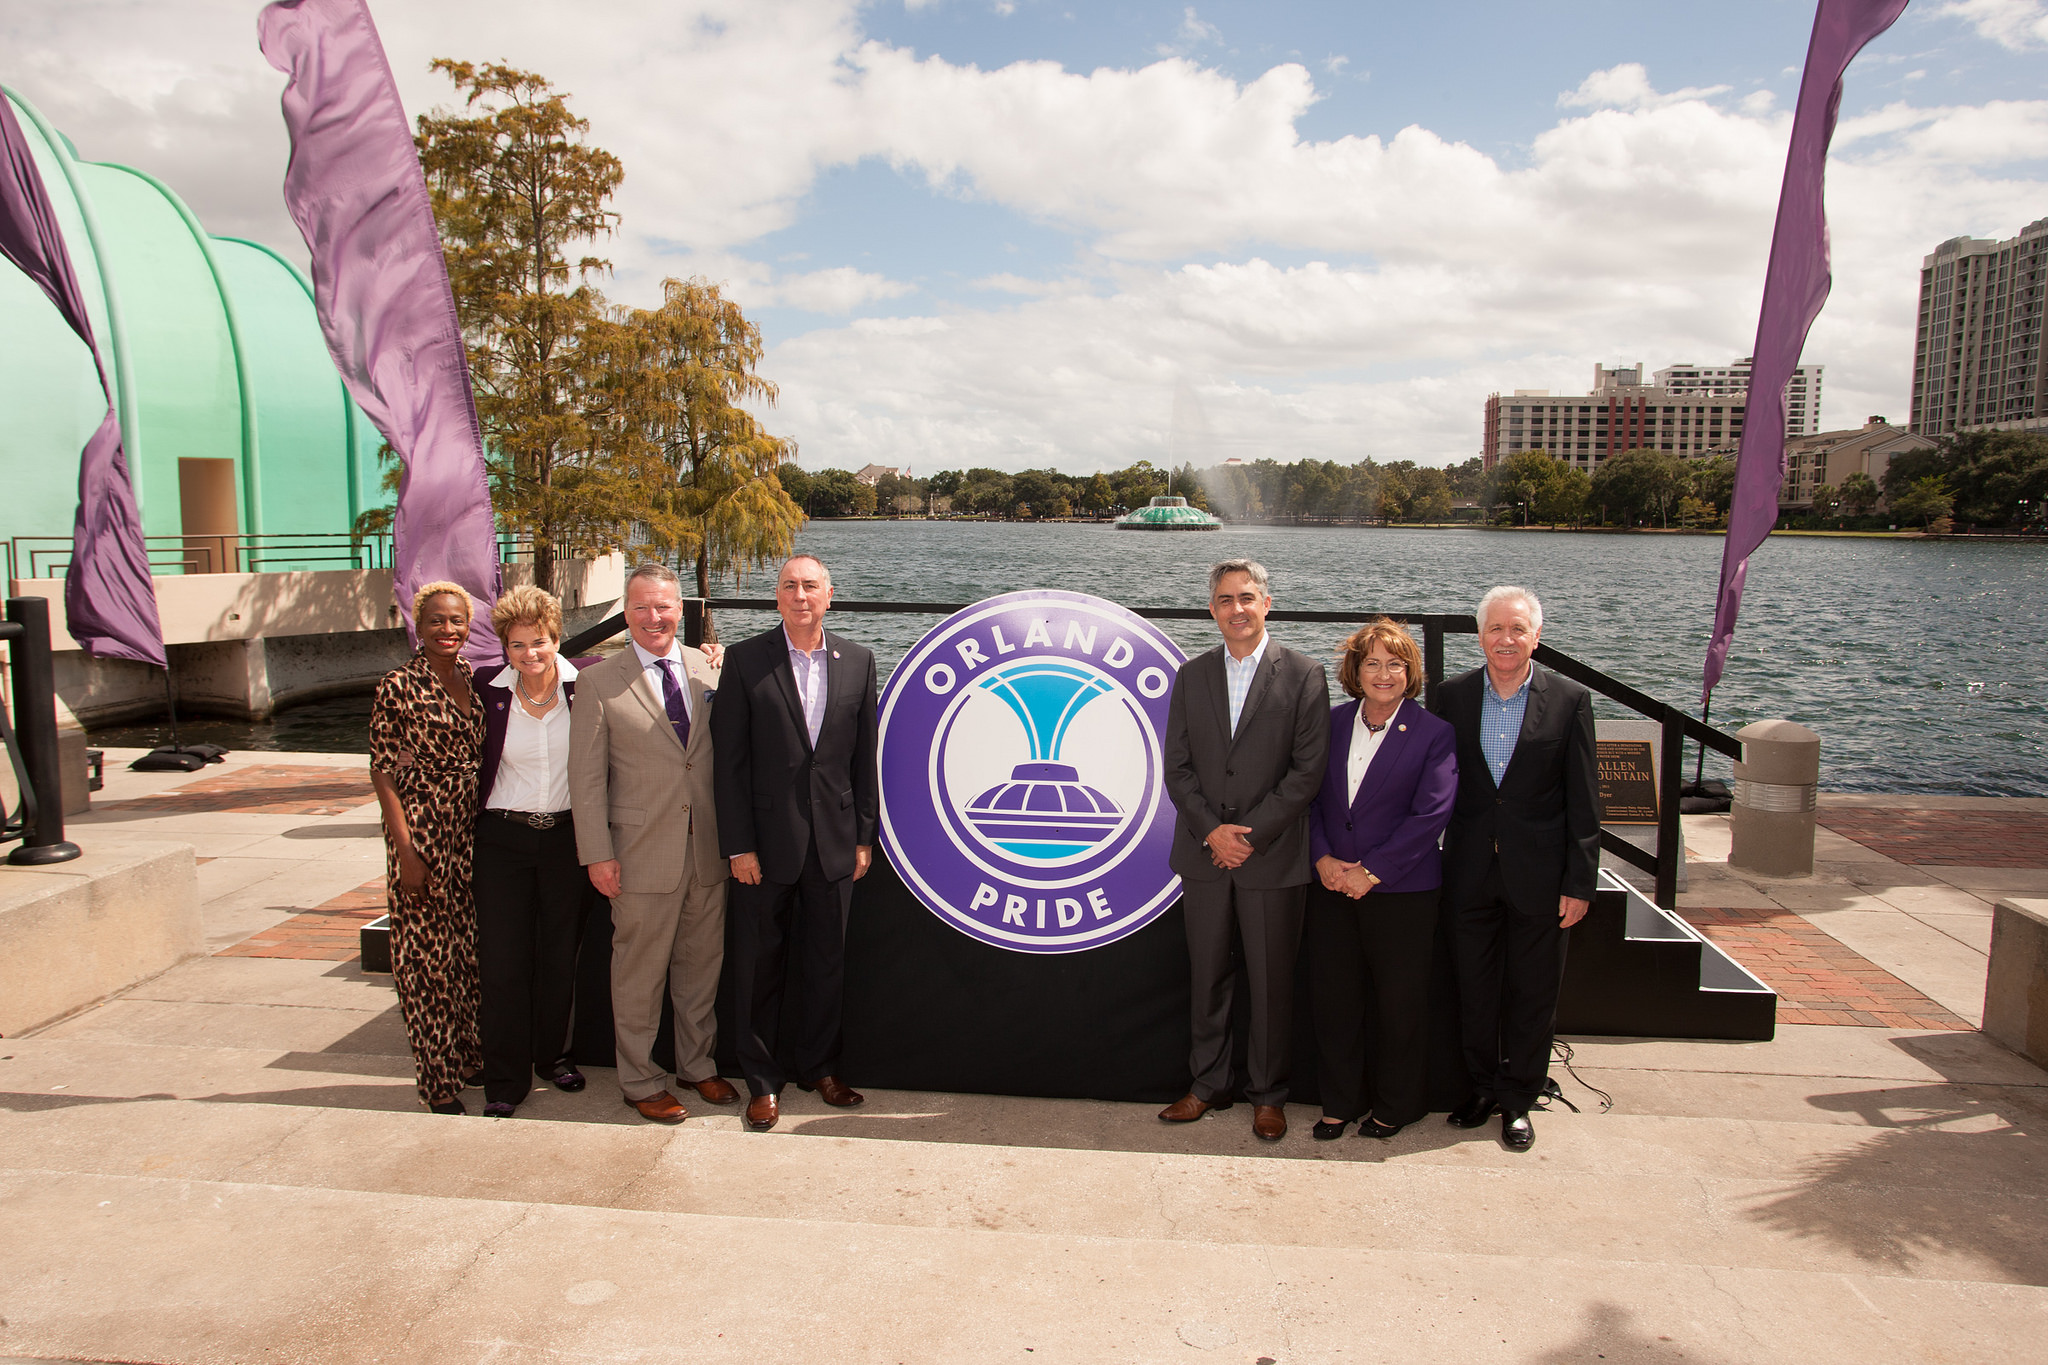 OC and City of Orlando at Lake Eola